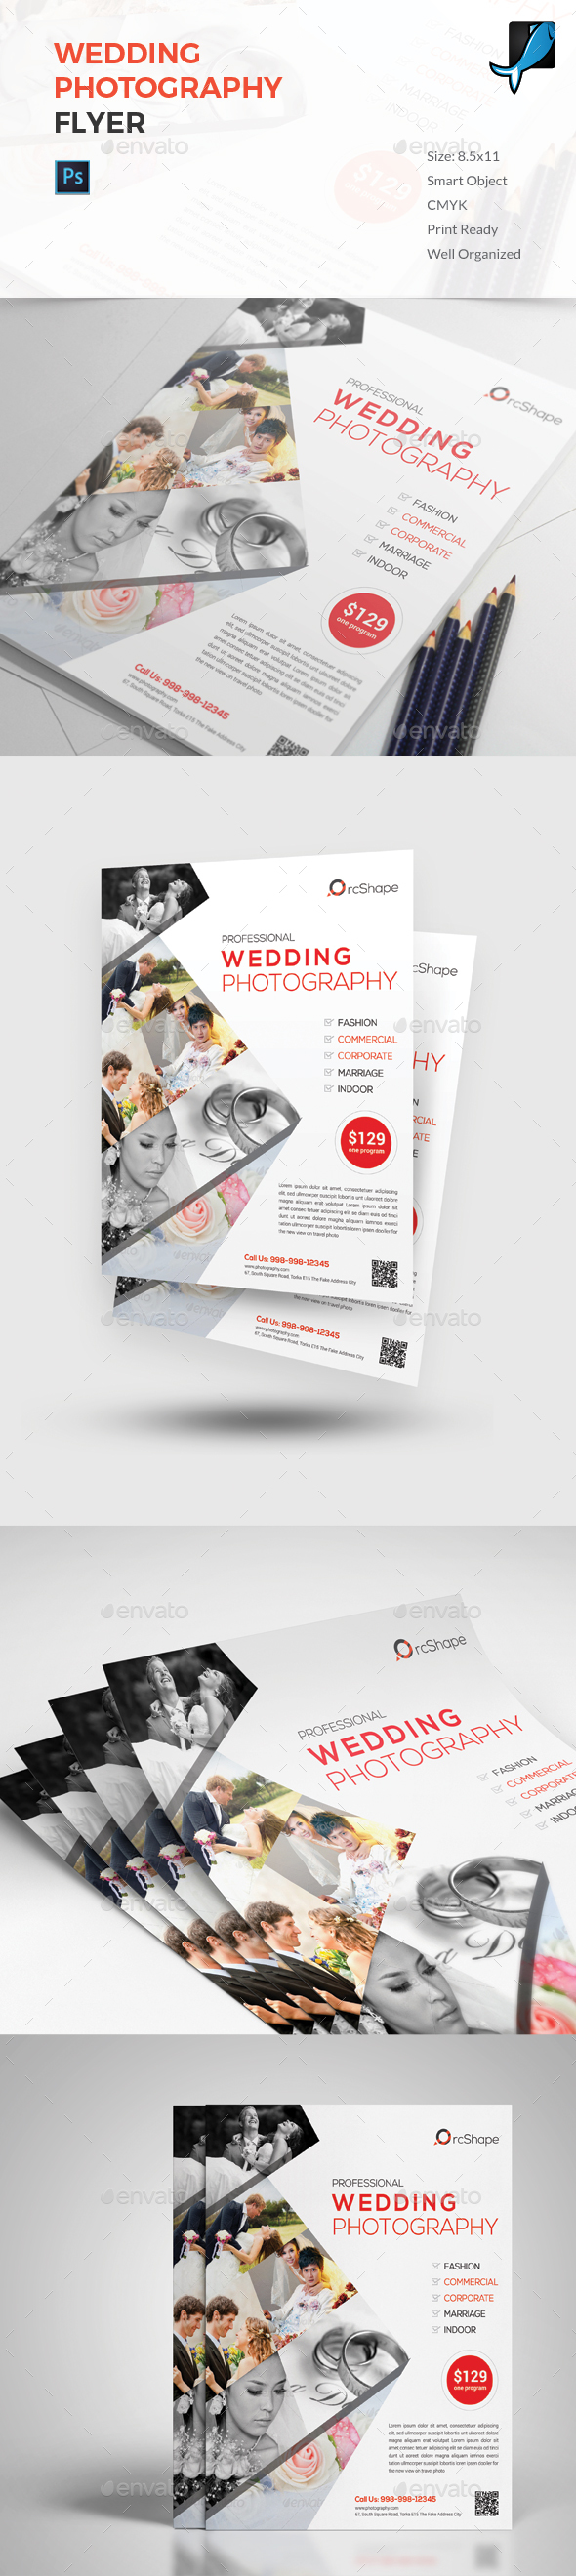 Photography Flyer Template Graphics, Designs & Templates